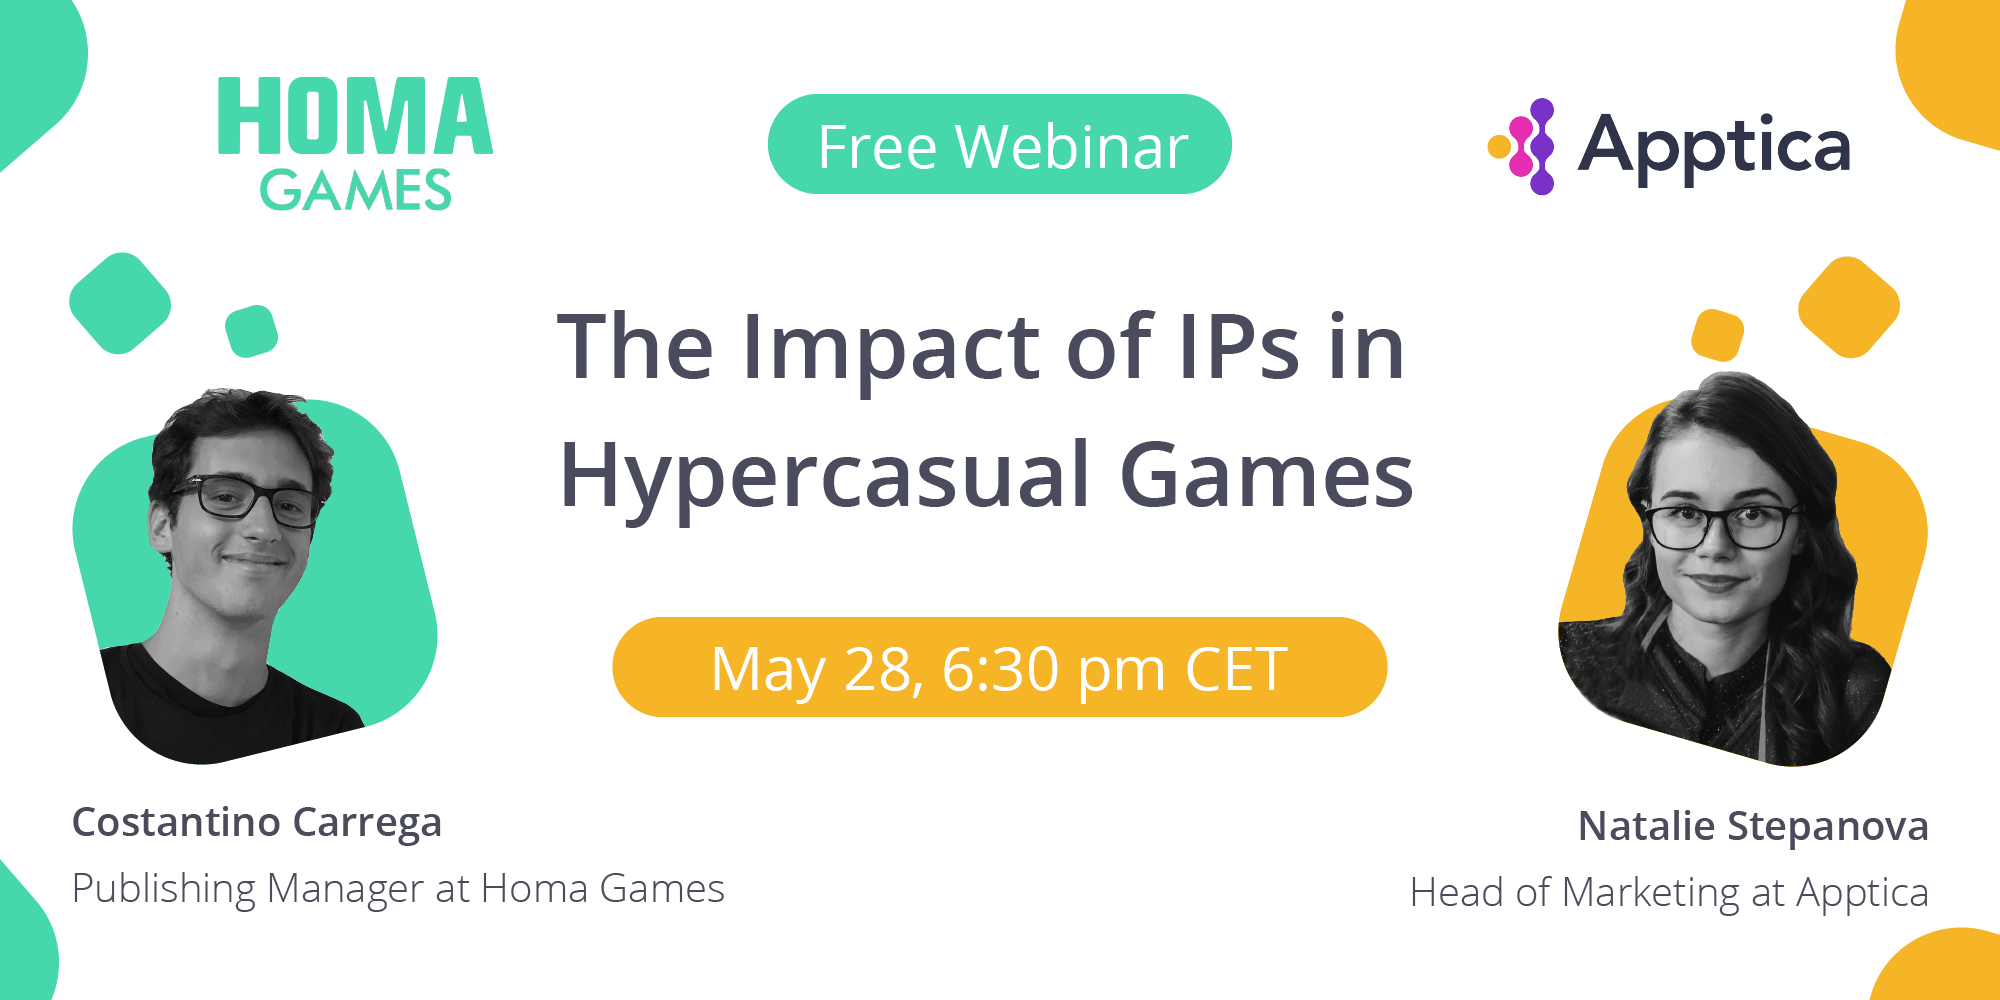 The Impact of IPs in Hypercasual Games